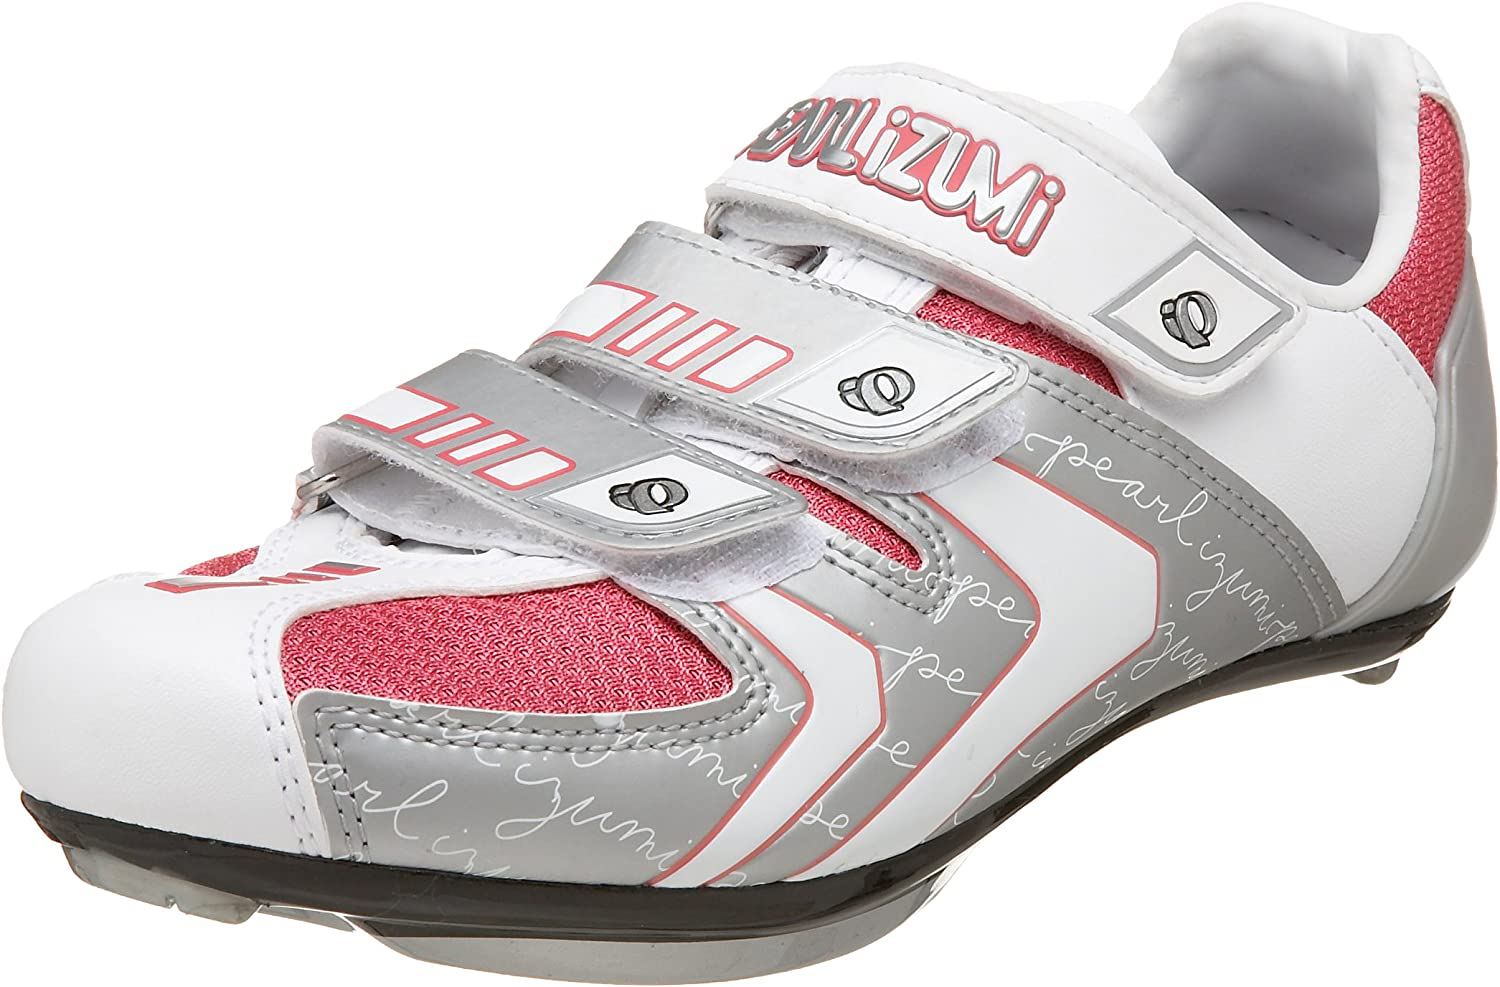 Pearl Izumi Women's Elite RD Cycling shoes